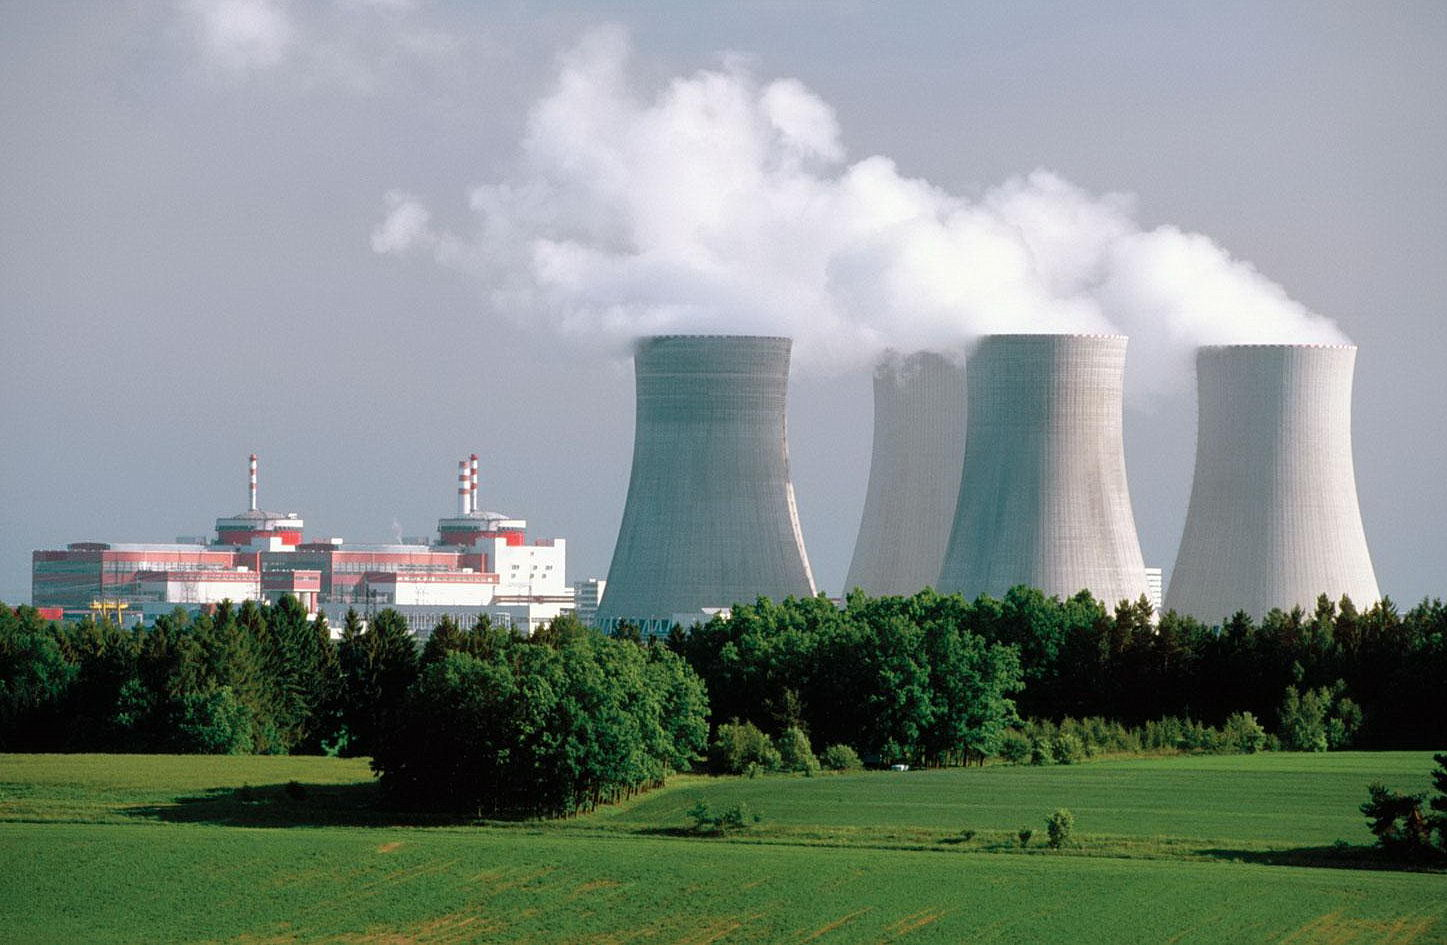 EQUIPMENT FOR NUCLEAR POWER PLANTS